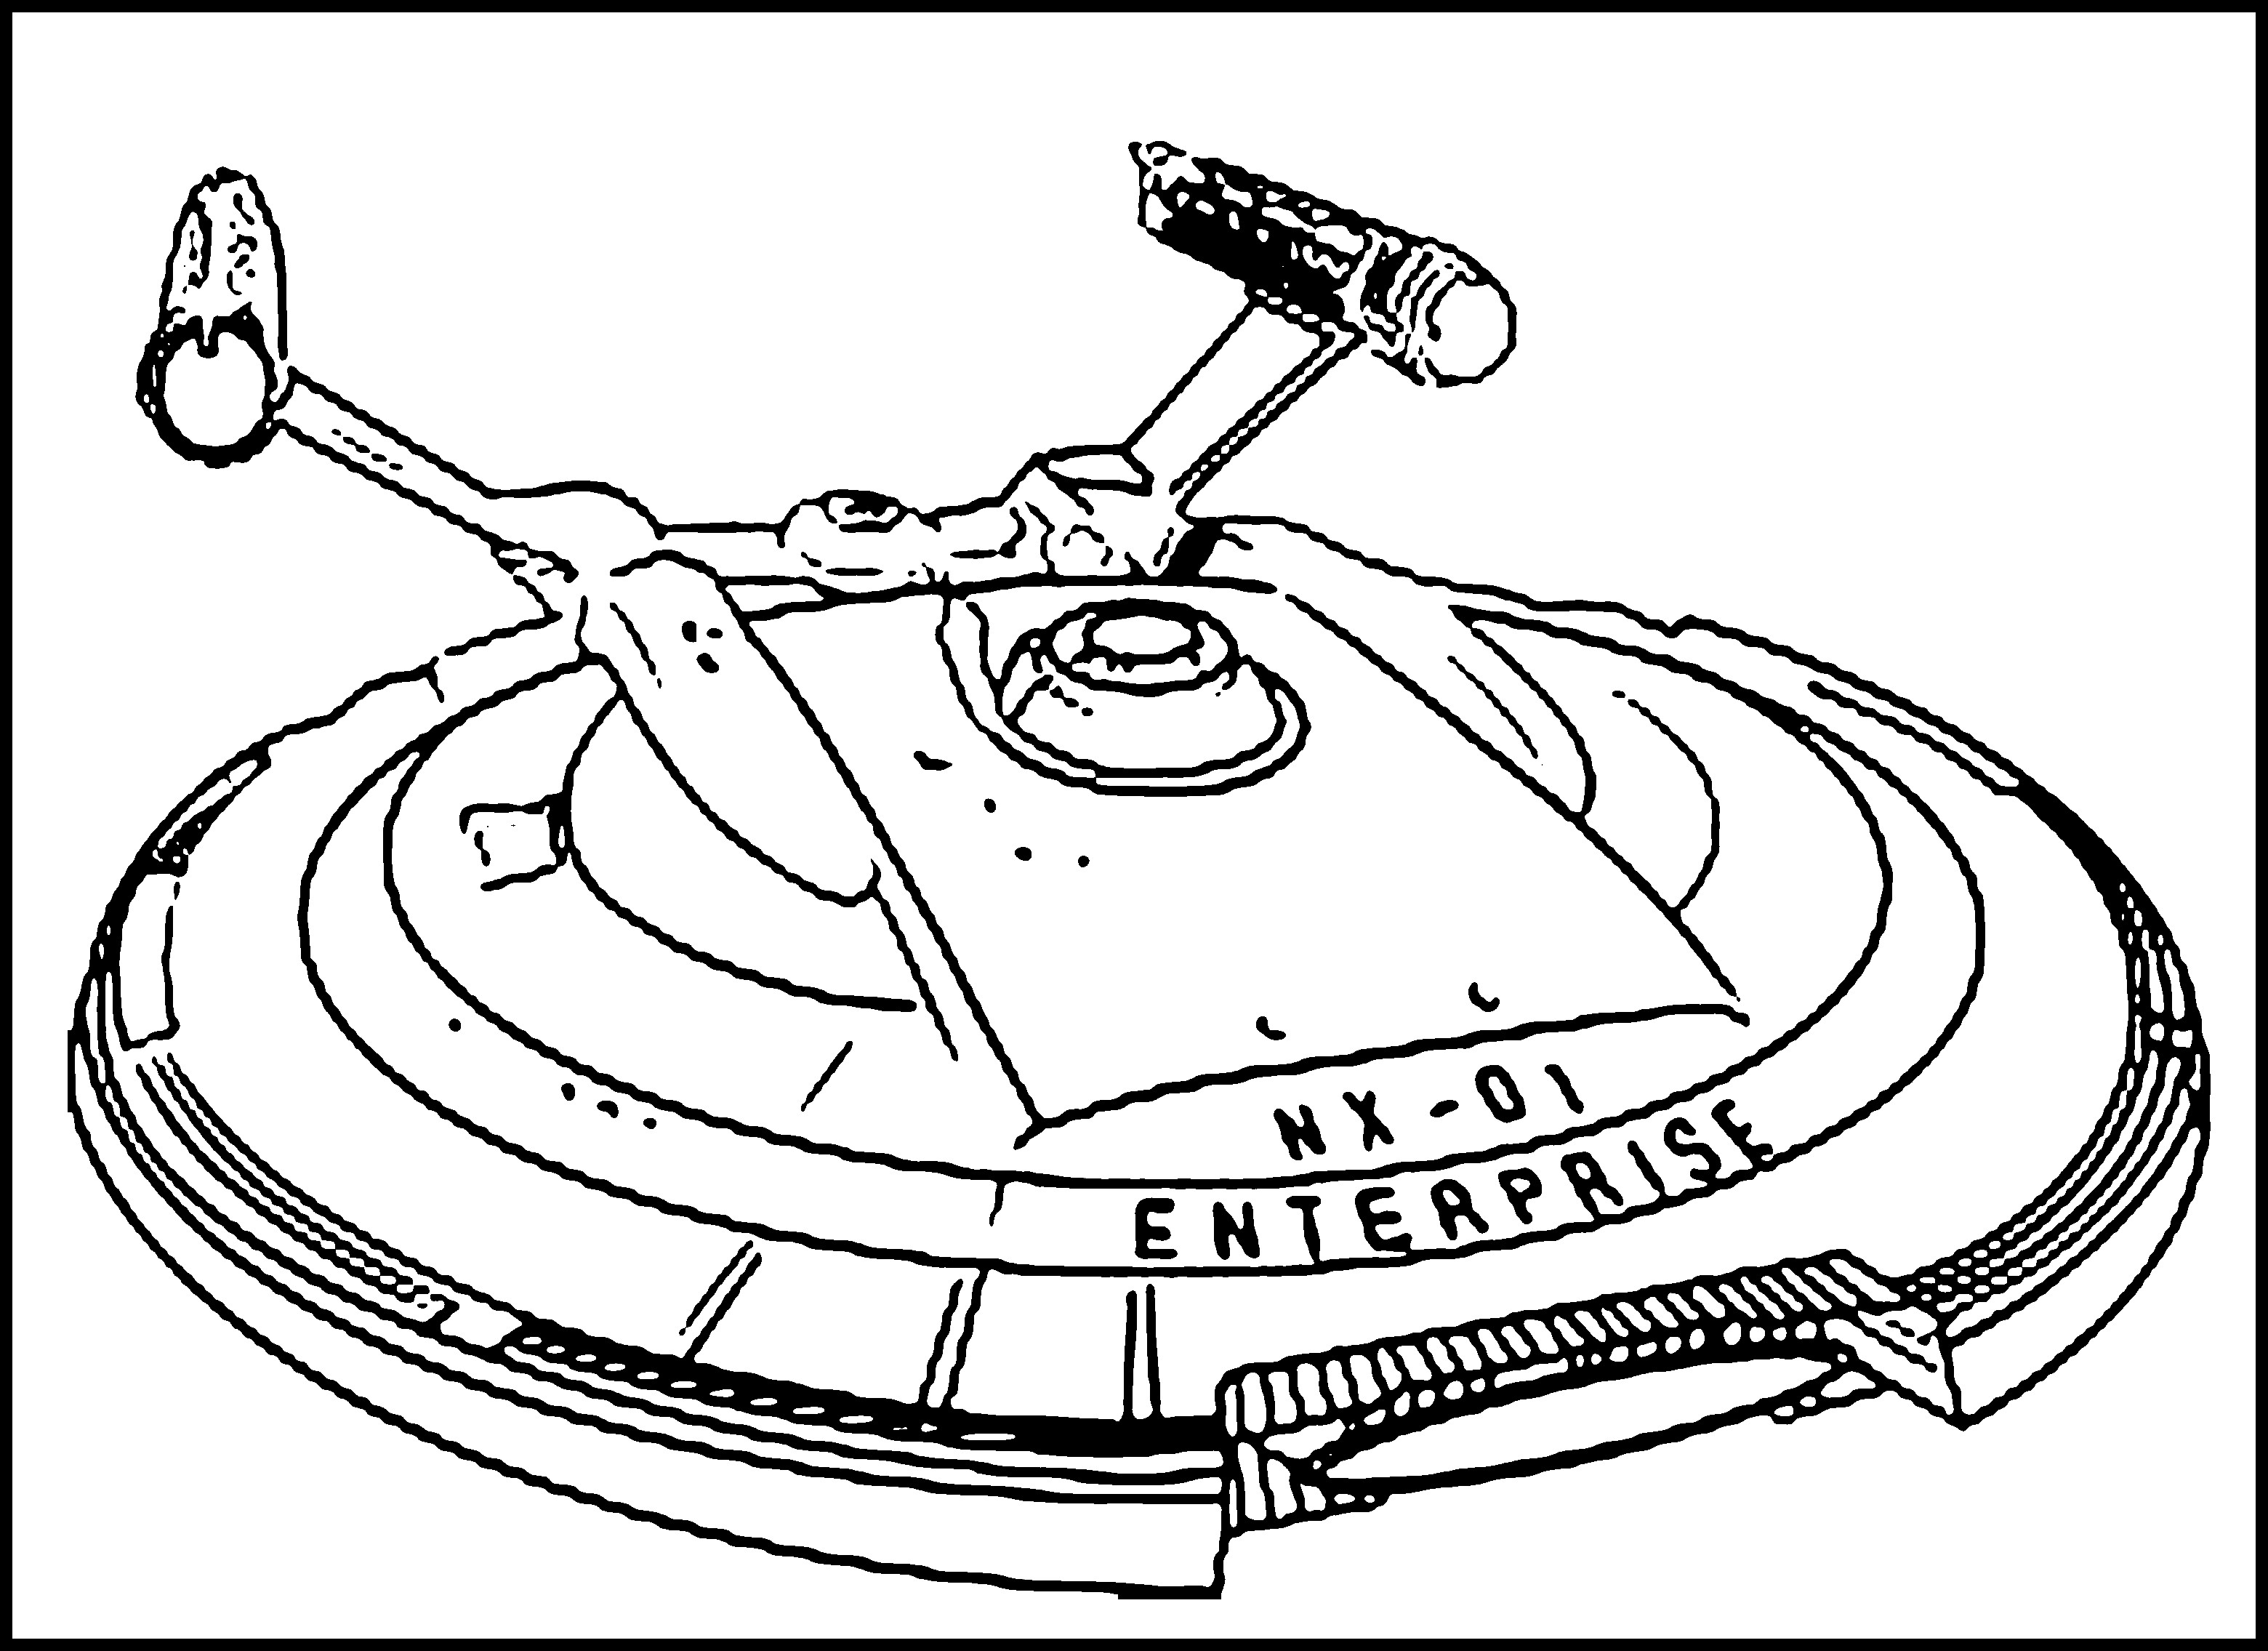 3120x2271 Space And Ufo Coloring Pages For Kids Unique Ufo Spacecraft